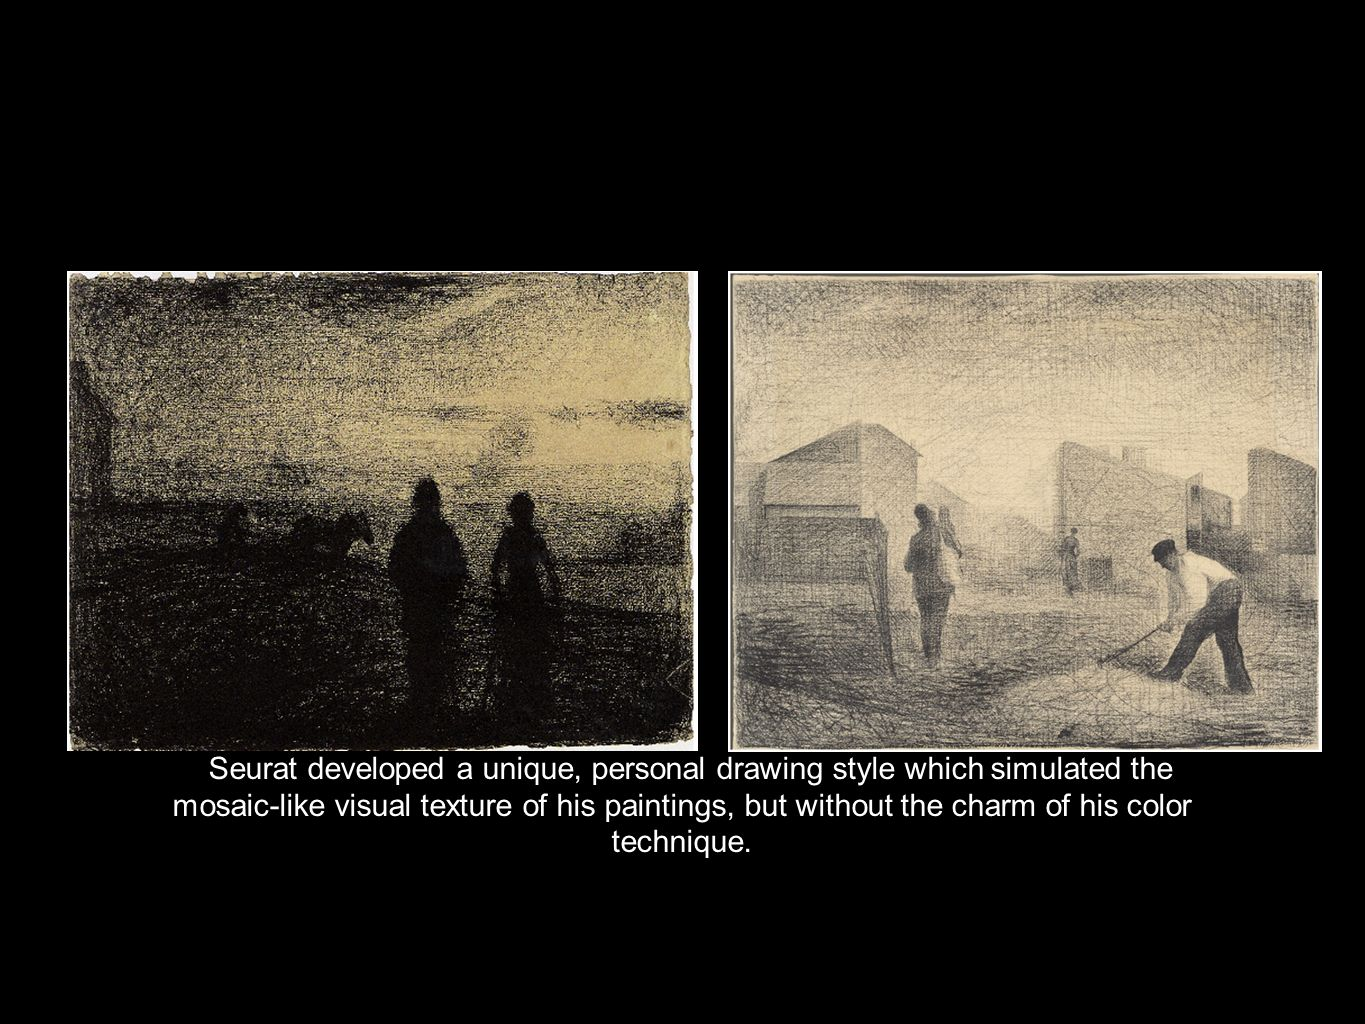 Seurat developed a unique, personal drawing style which simulated the mosaic-like visual texture of his paintings, but without the charm of his color technique.